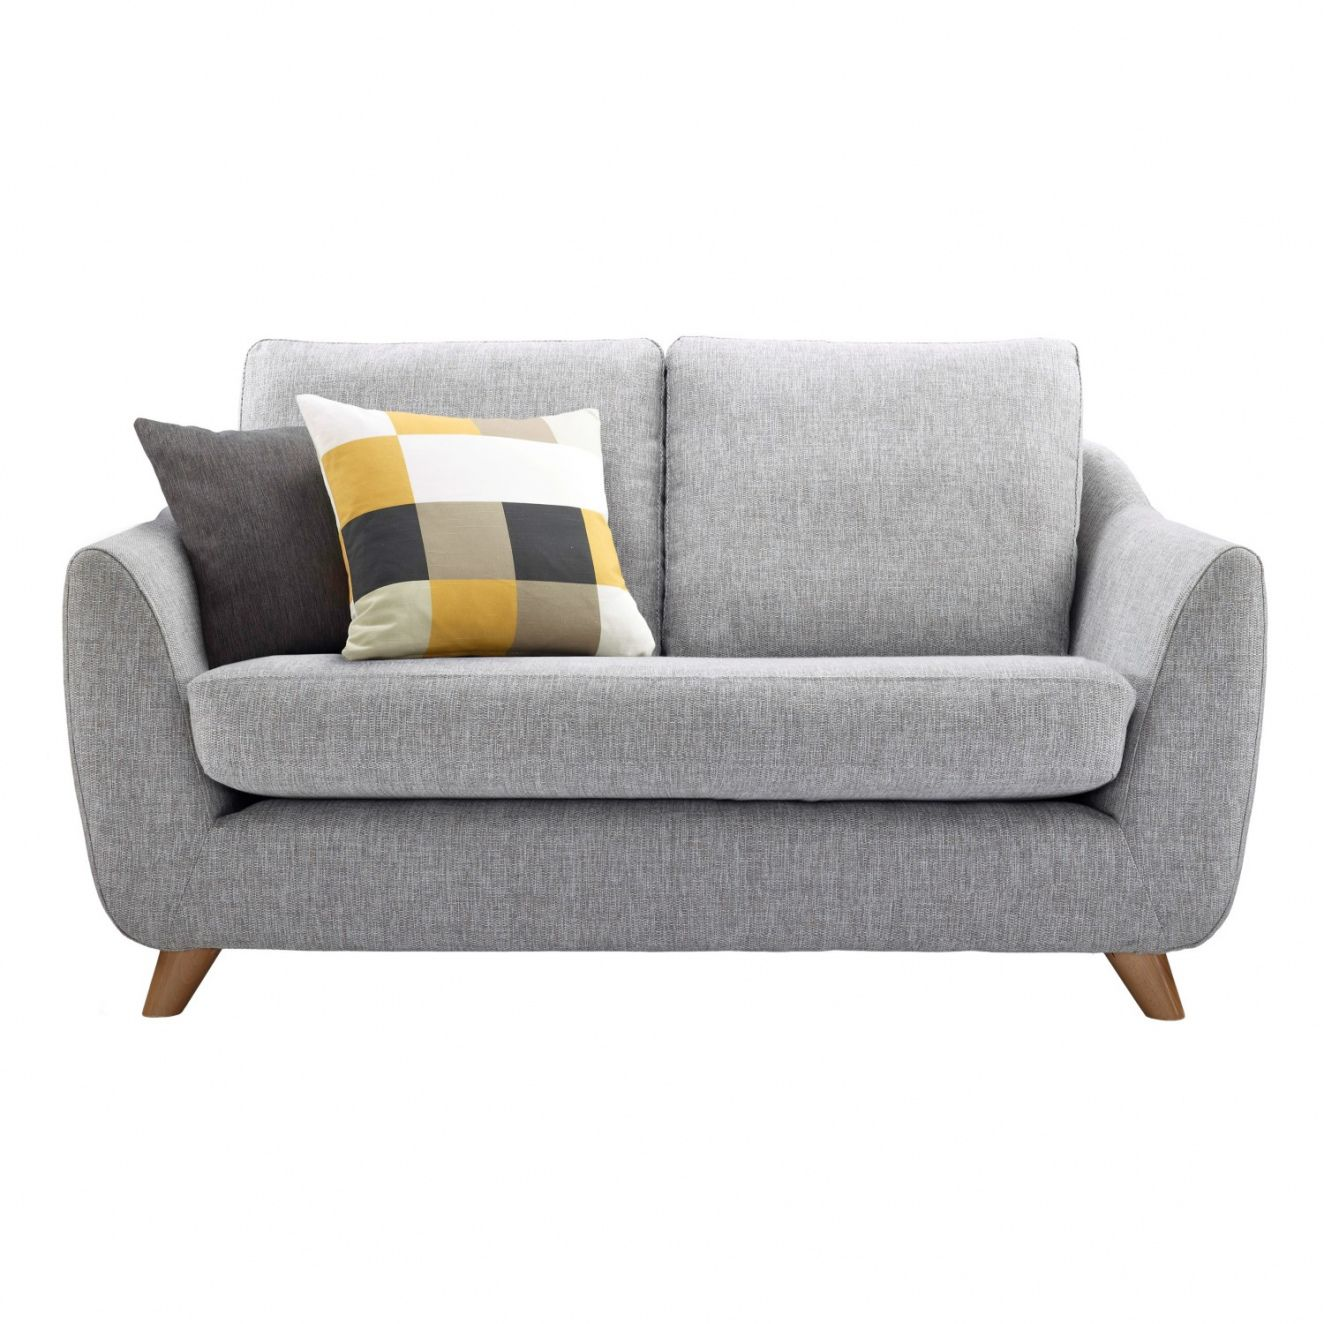 Small Settee Sofa Interior Paint Color Schemes Check More At Http Www